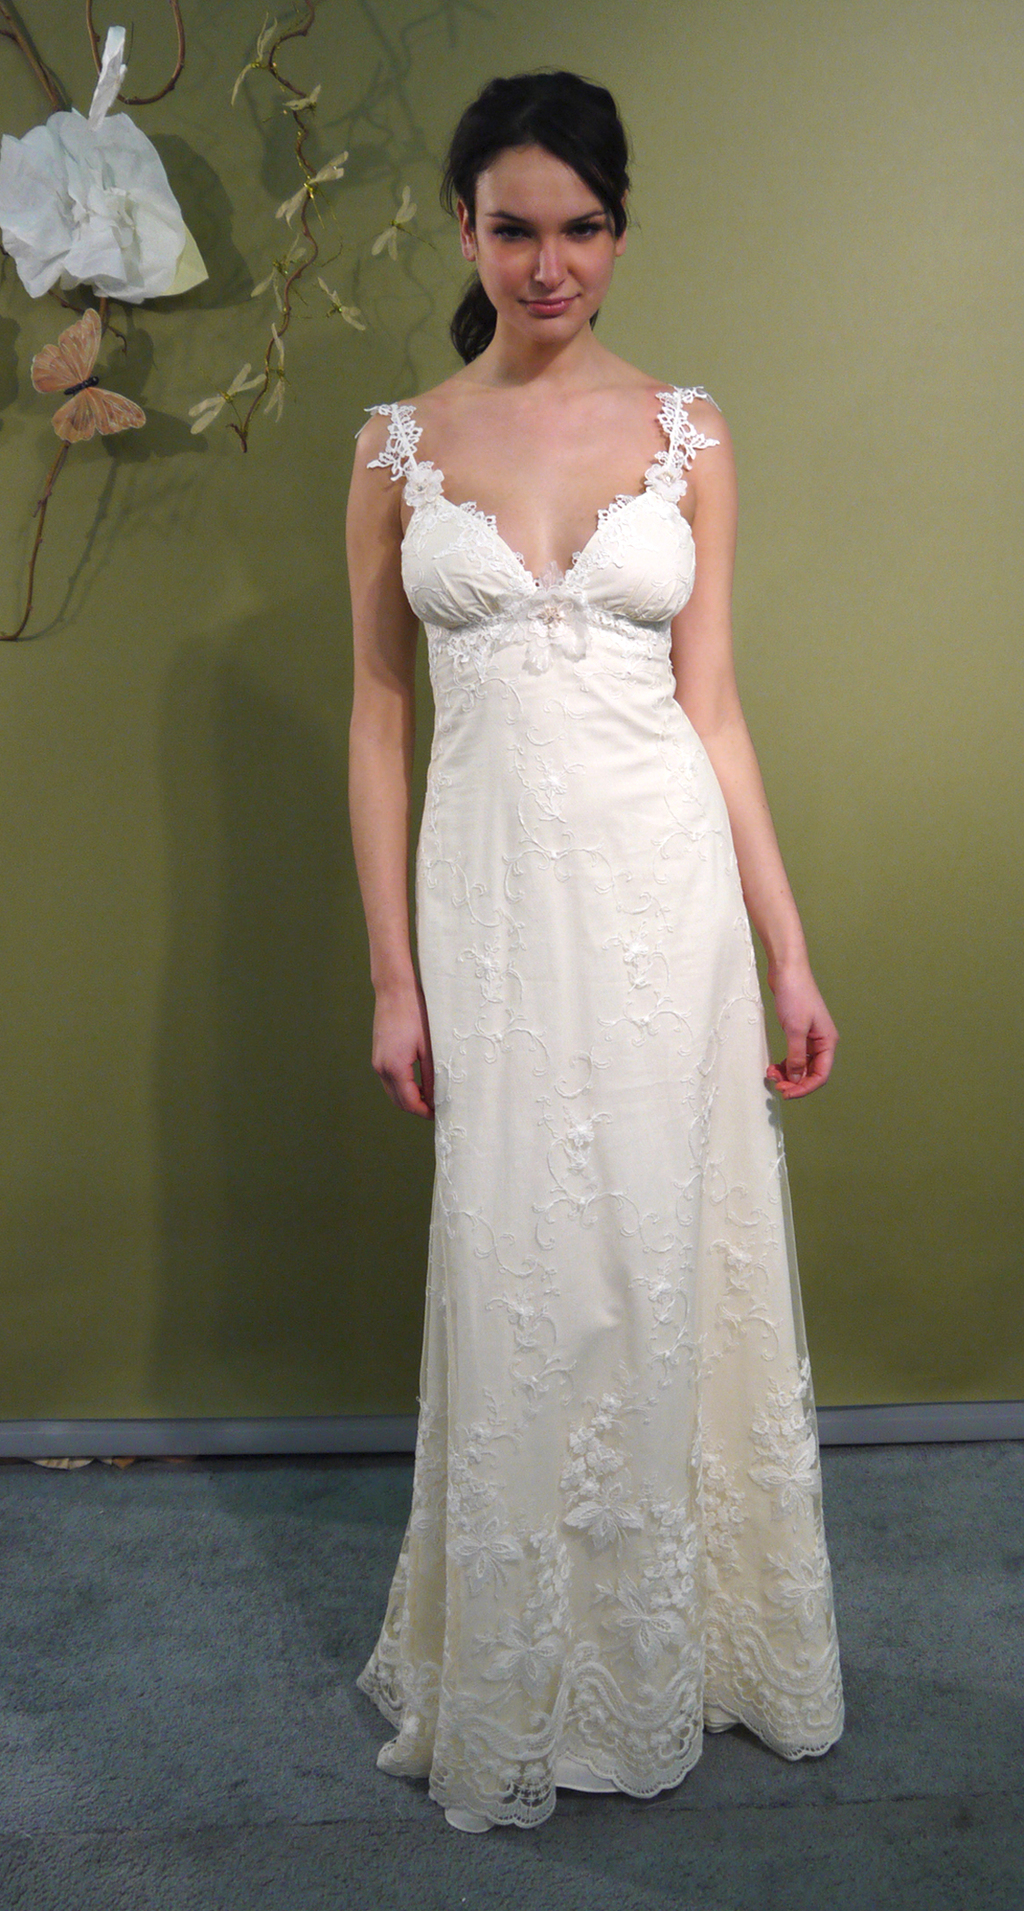 romantic sweetheart neckline ivory column wedding dress with vintage chic bridal belt by claire pett ivory wedding dress Romantic sweetheart neckline ivory column wedding dress with vintage chic bridal belt by Claire Pett